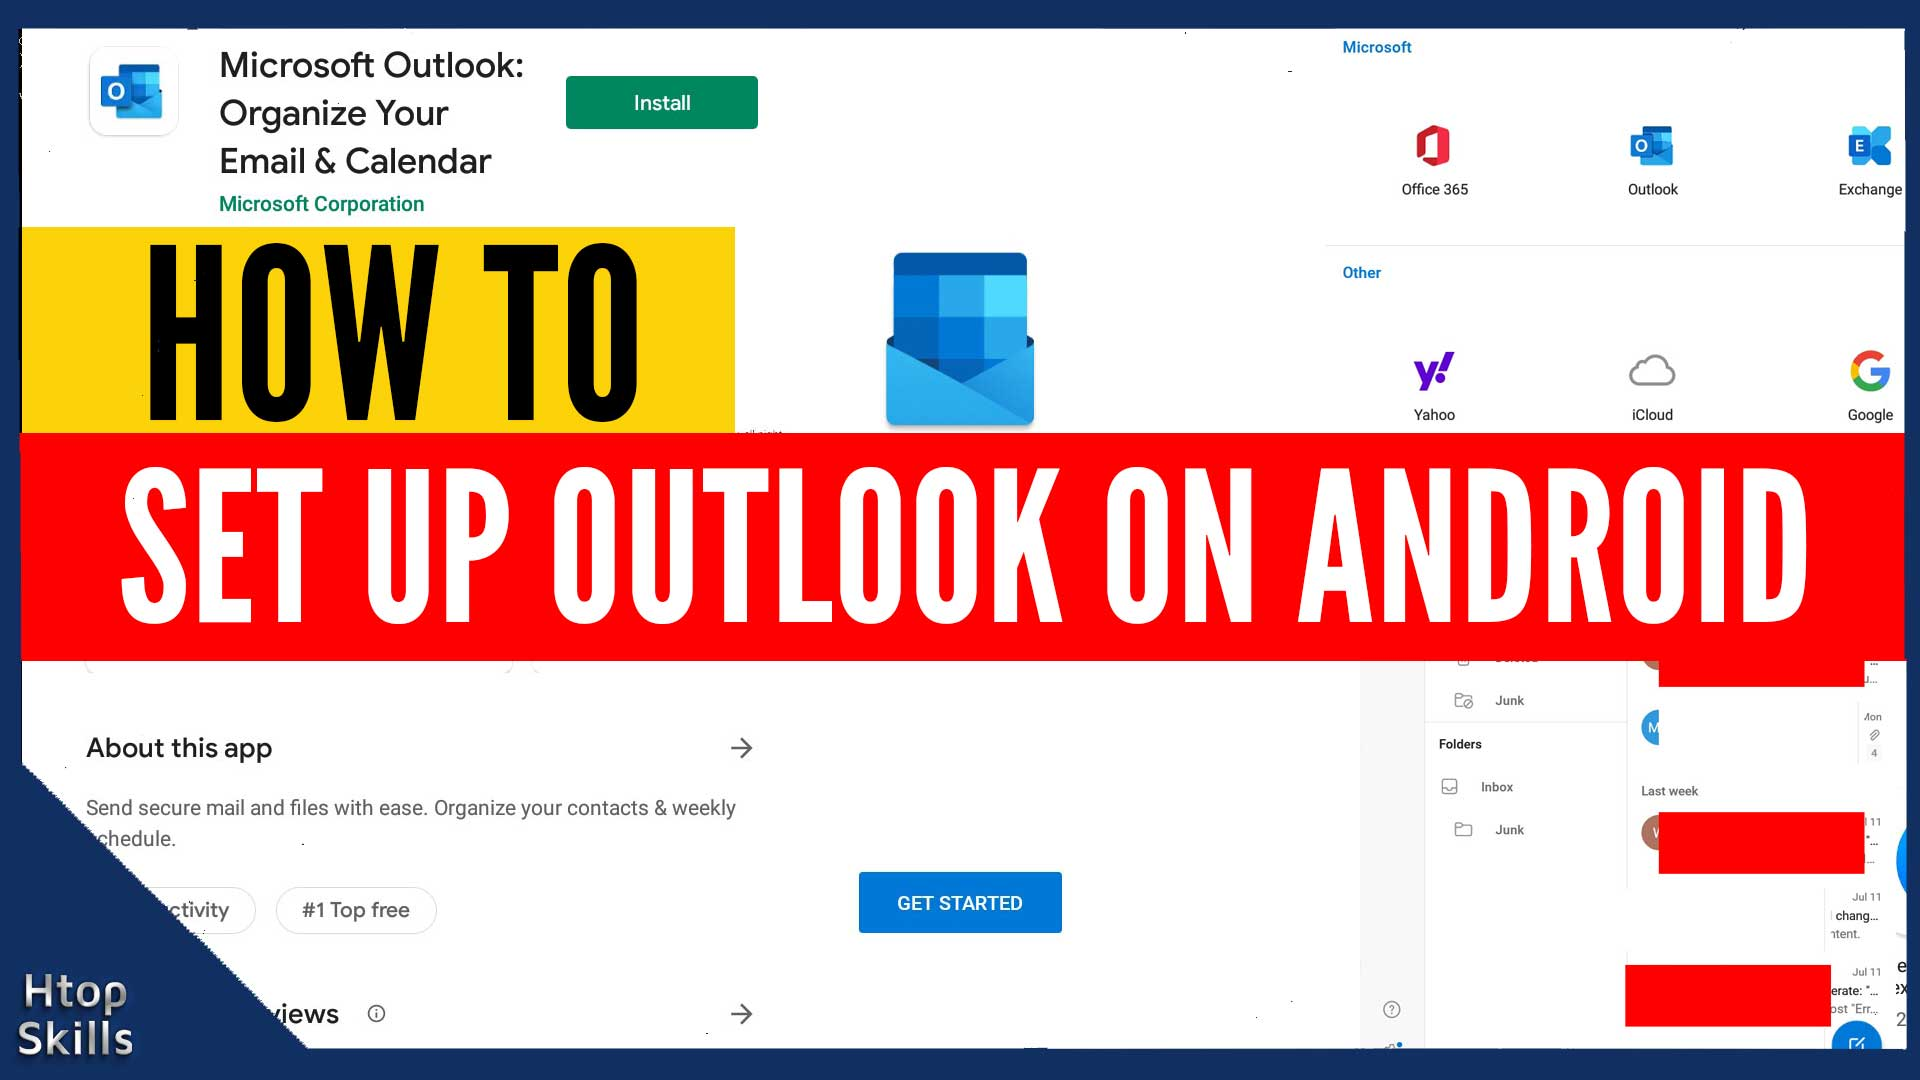 How To Set Up Outlook On Android